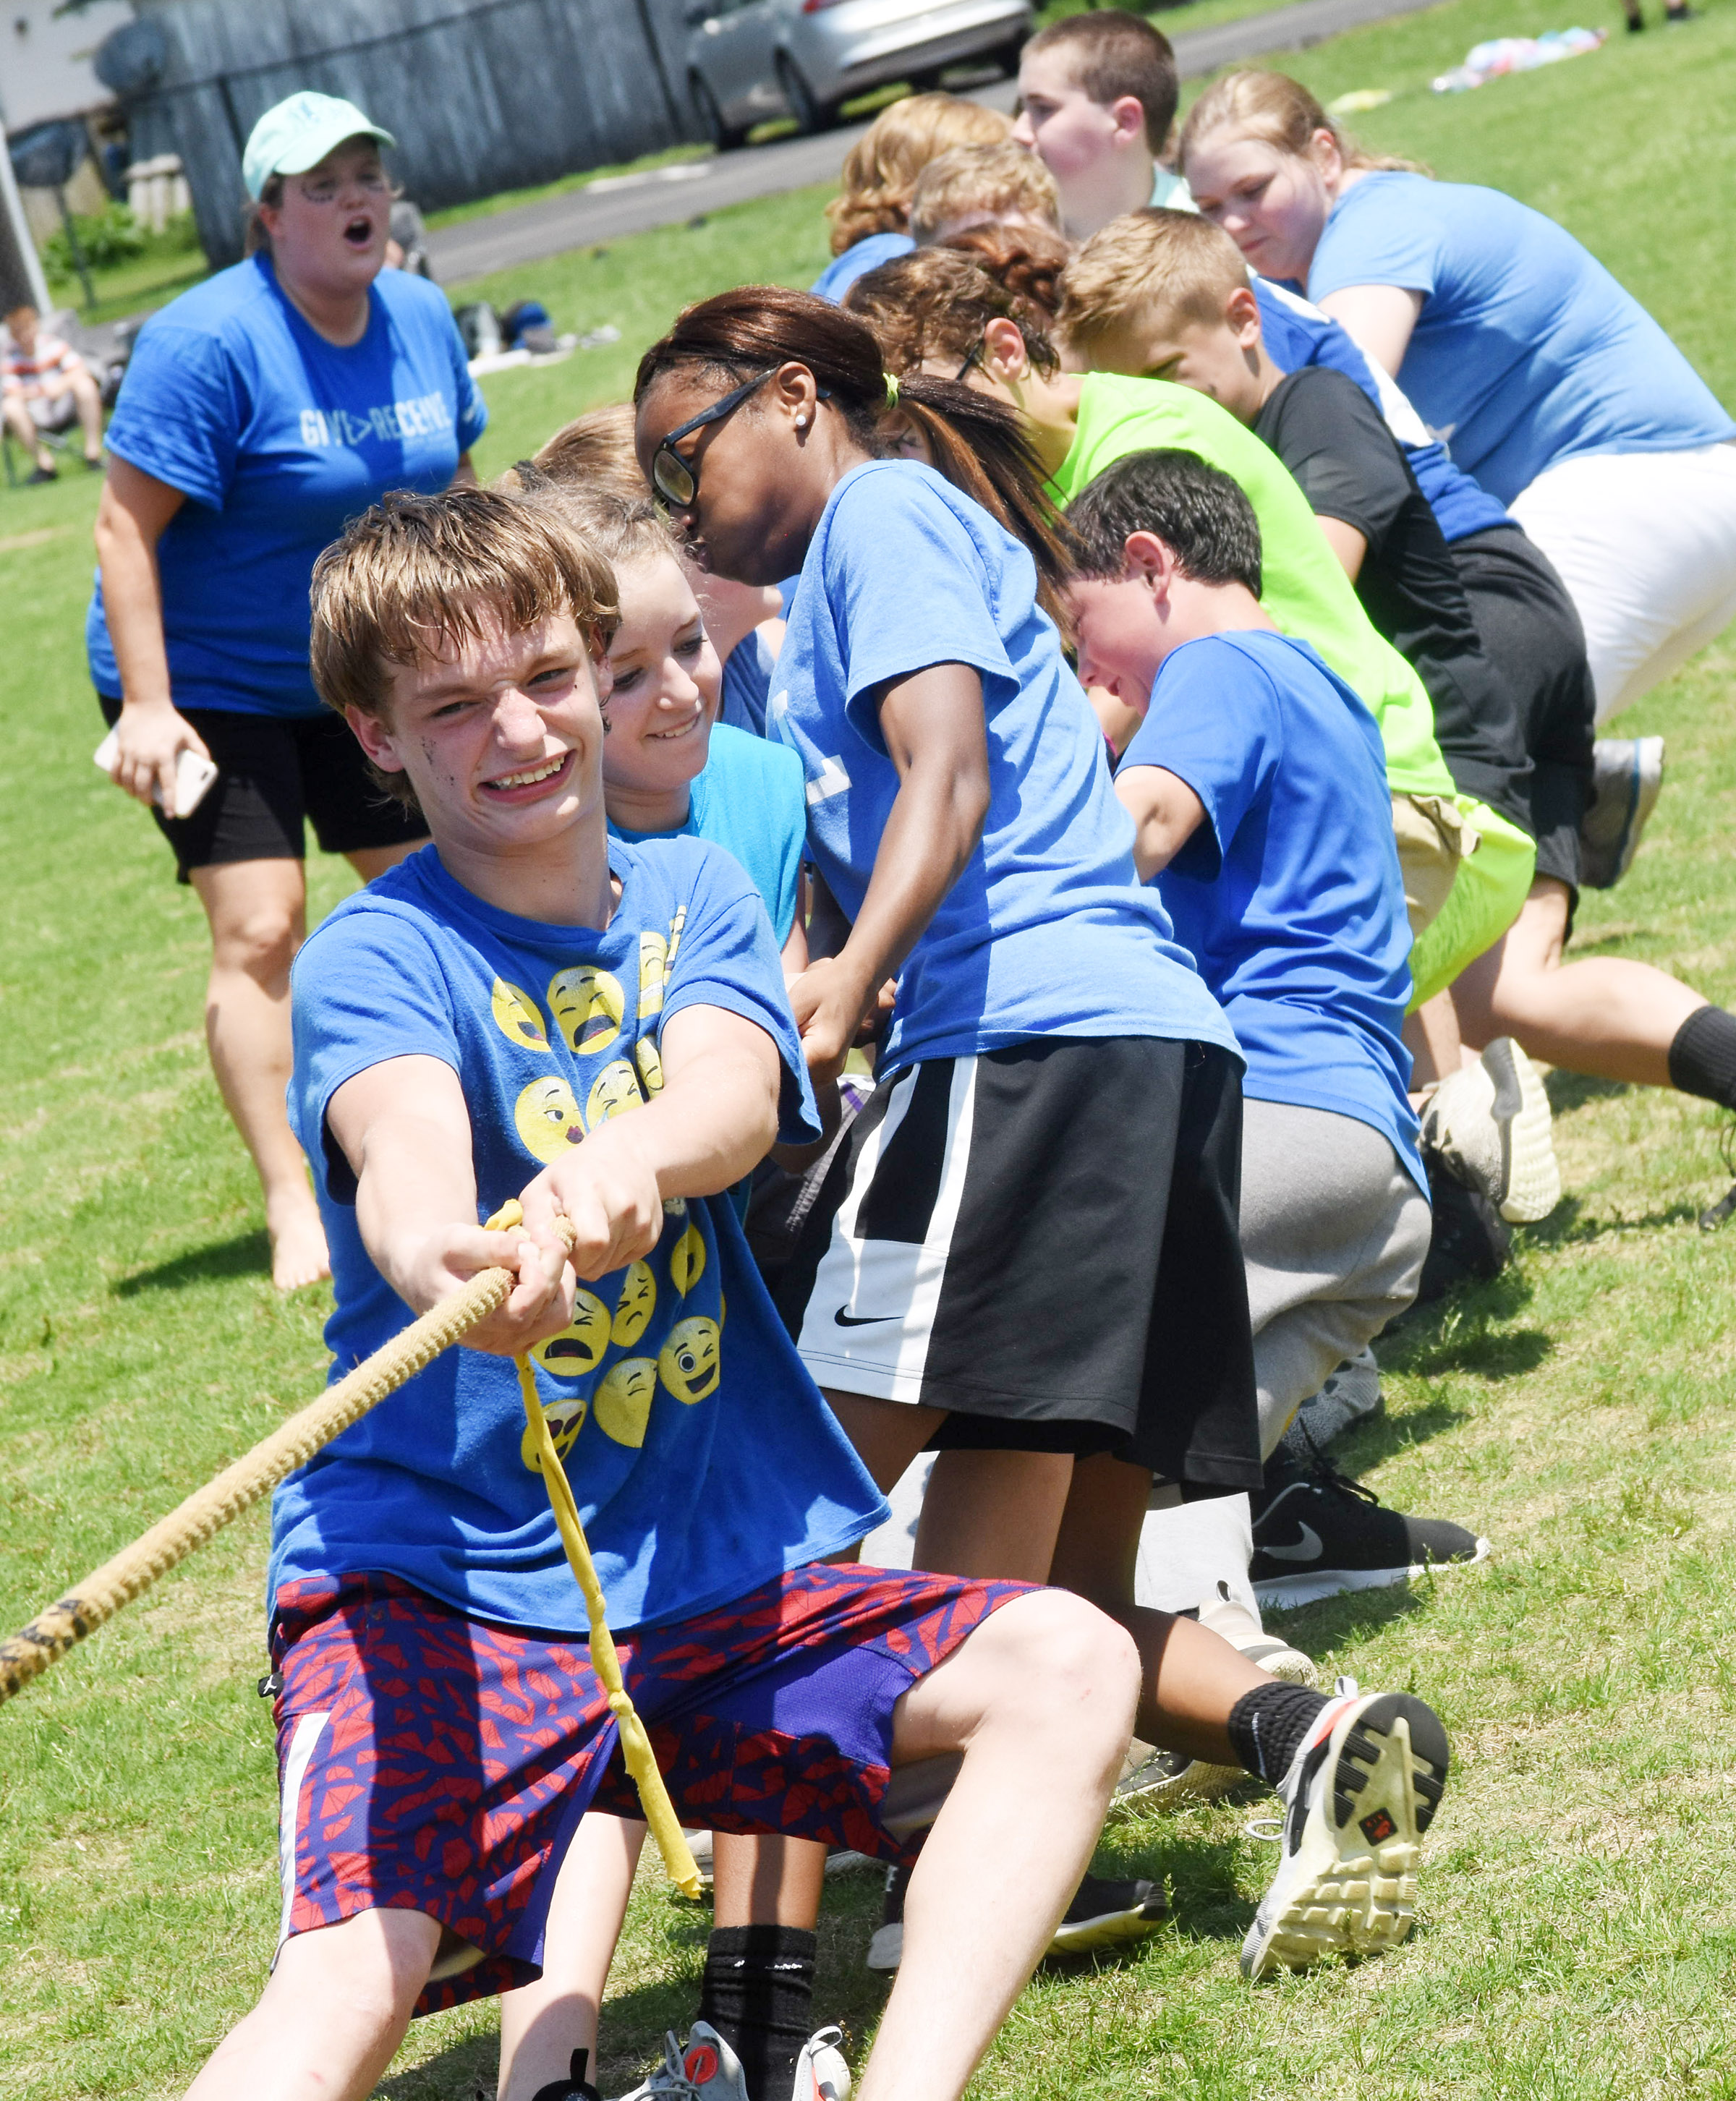 CMS eighth-graders in Paige Cook's class compete in the tug of war. In front is Dalton Reardon.